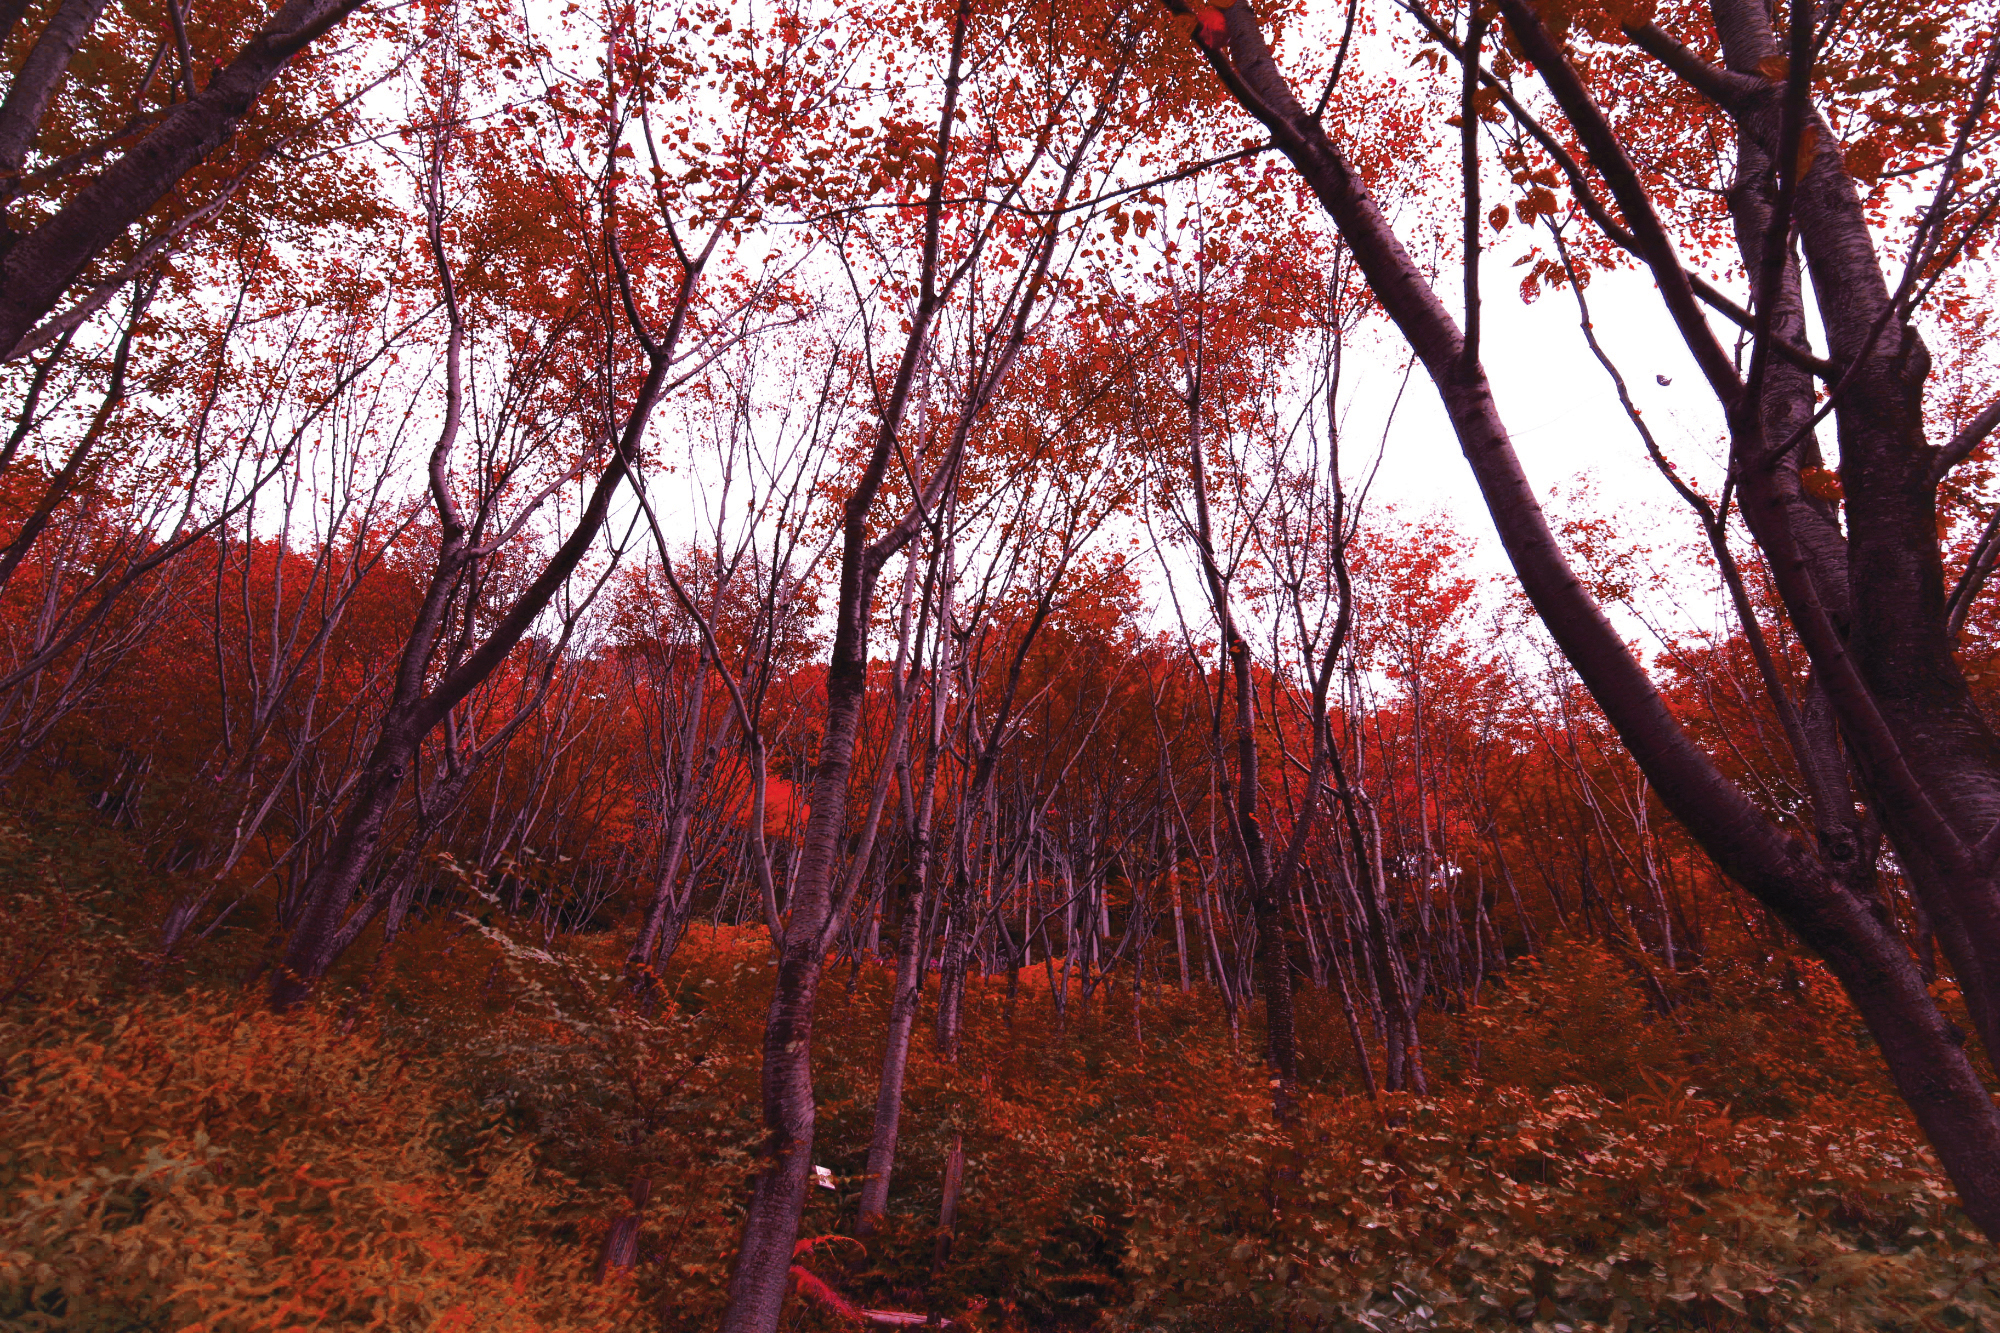 Photograph of a wooded area in Kyoto, Japan that's orange and pink. Dream like colors.